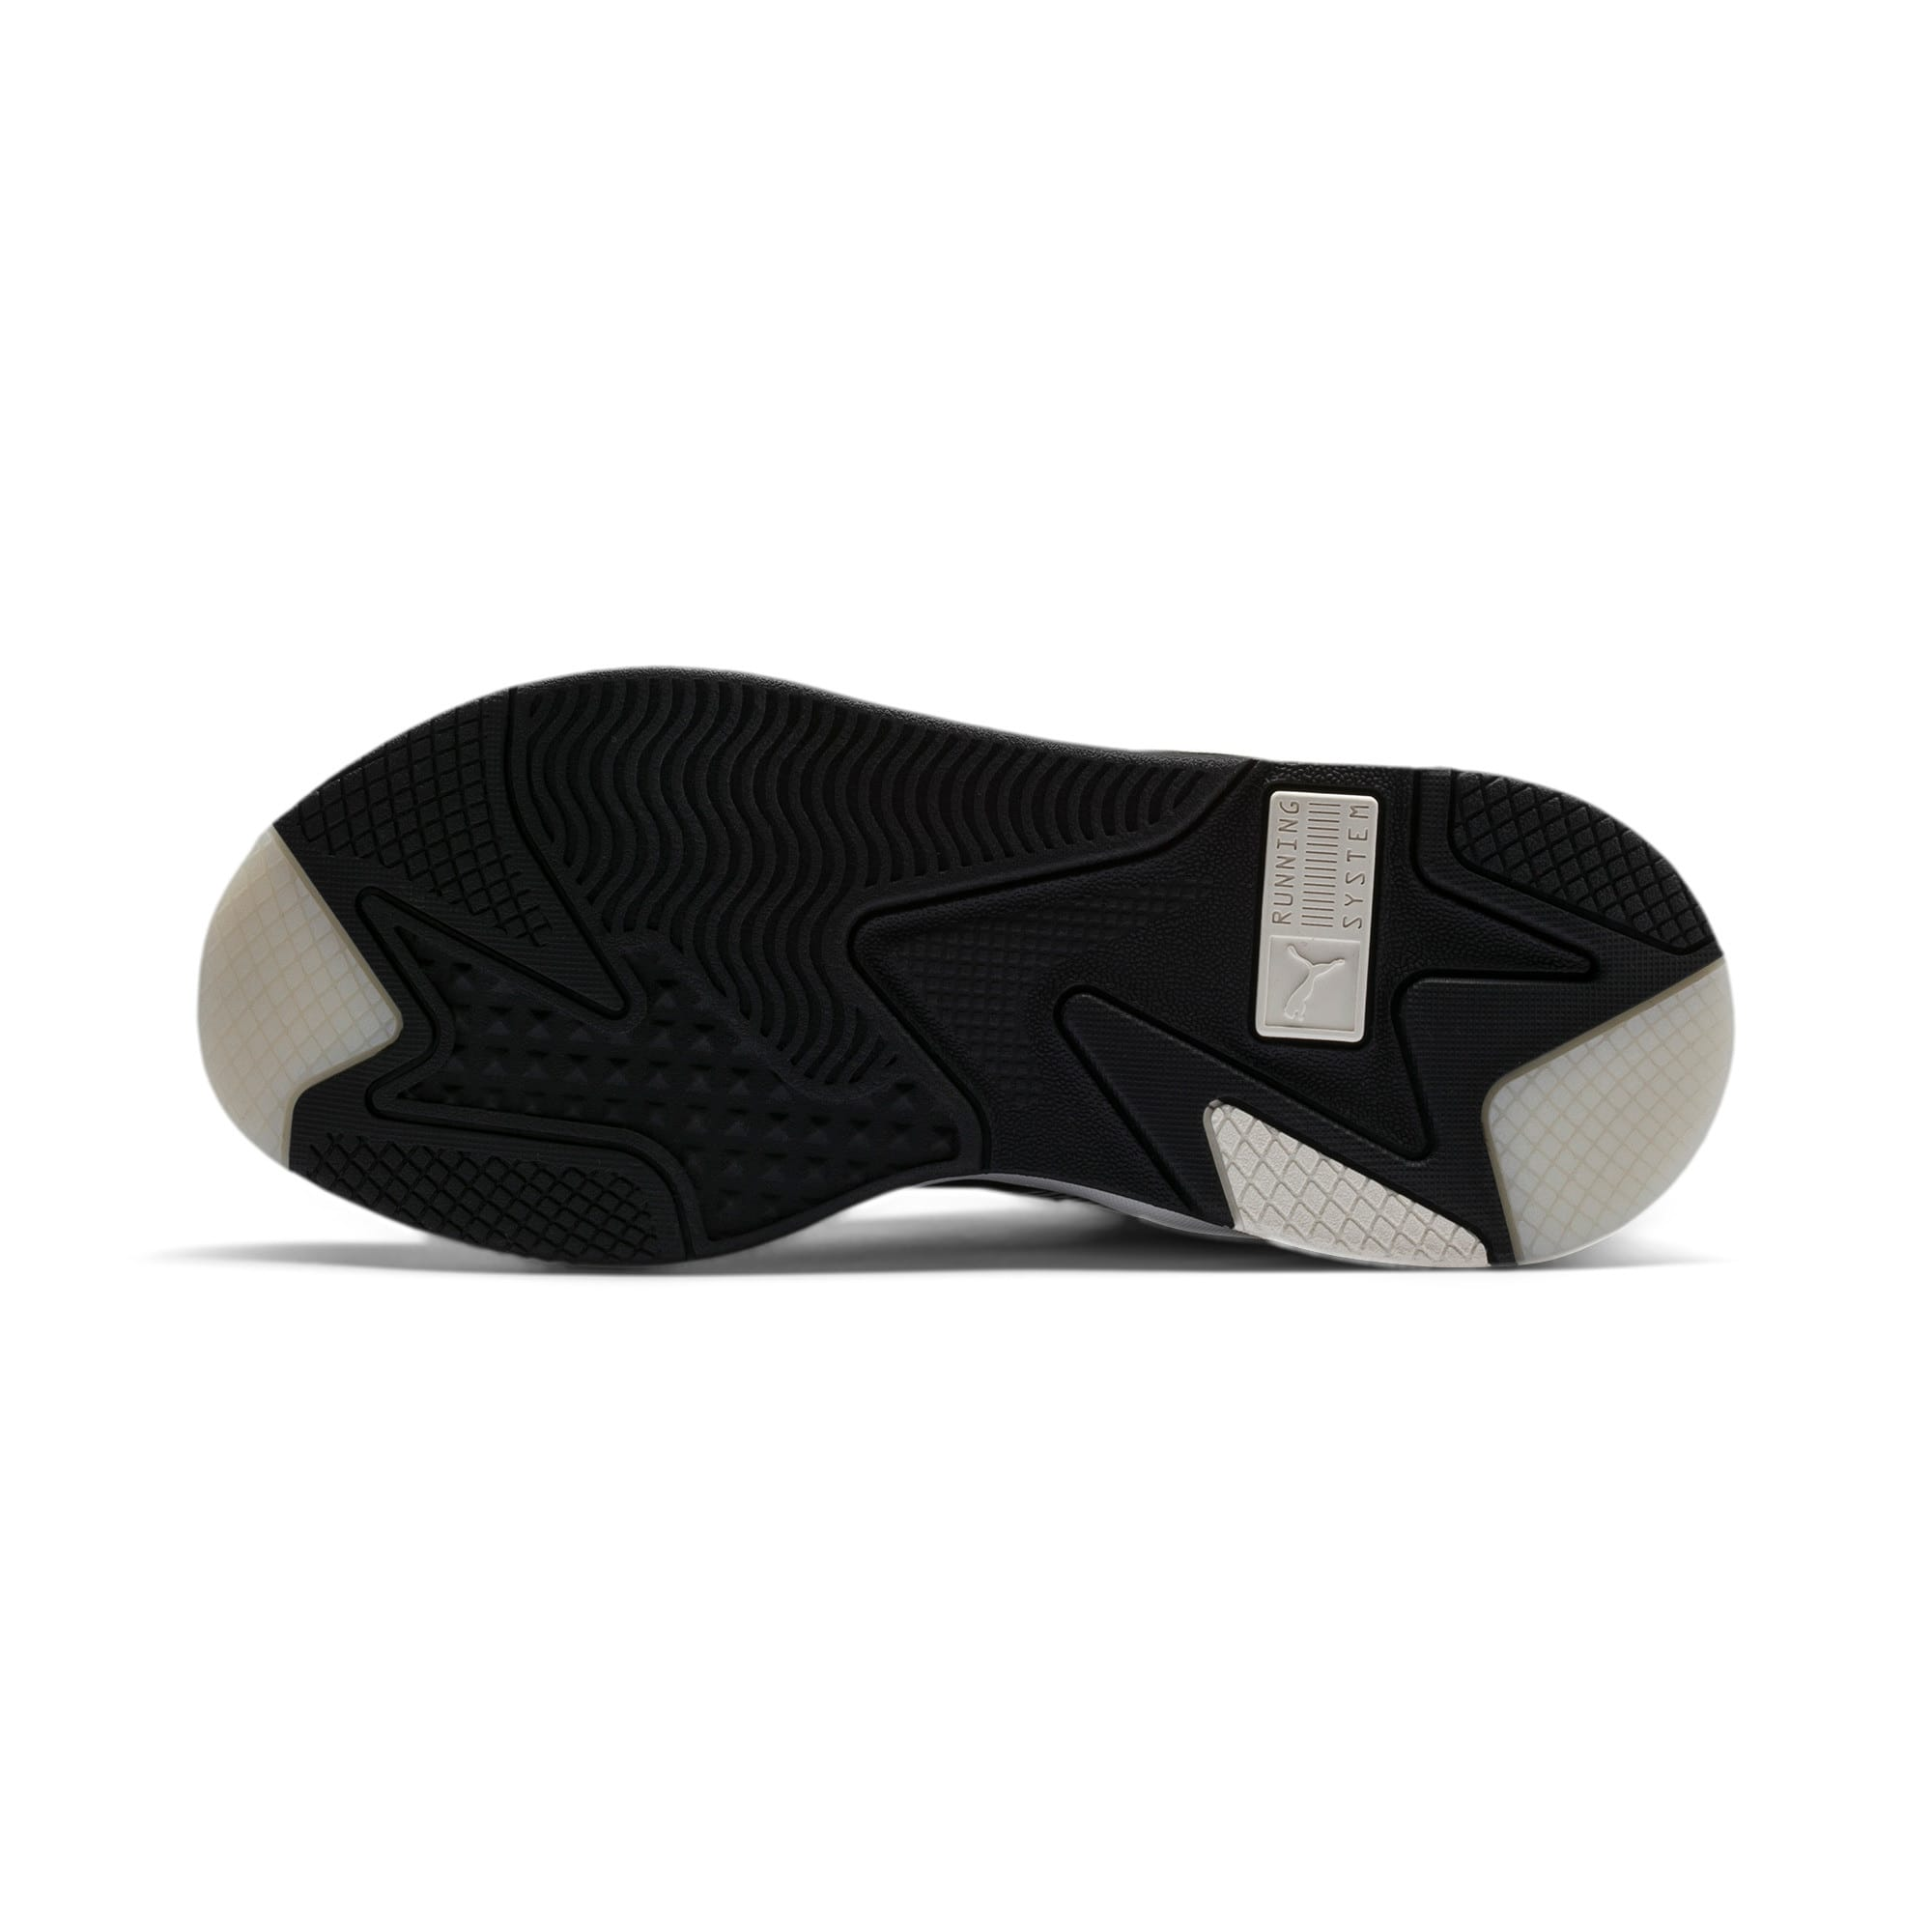 Thumbnail 5 of RS-X TECH スニーカー, Puma Black-Vaporous Gray, medium-JPN